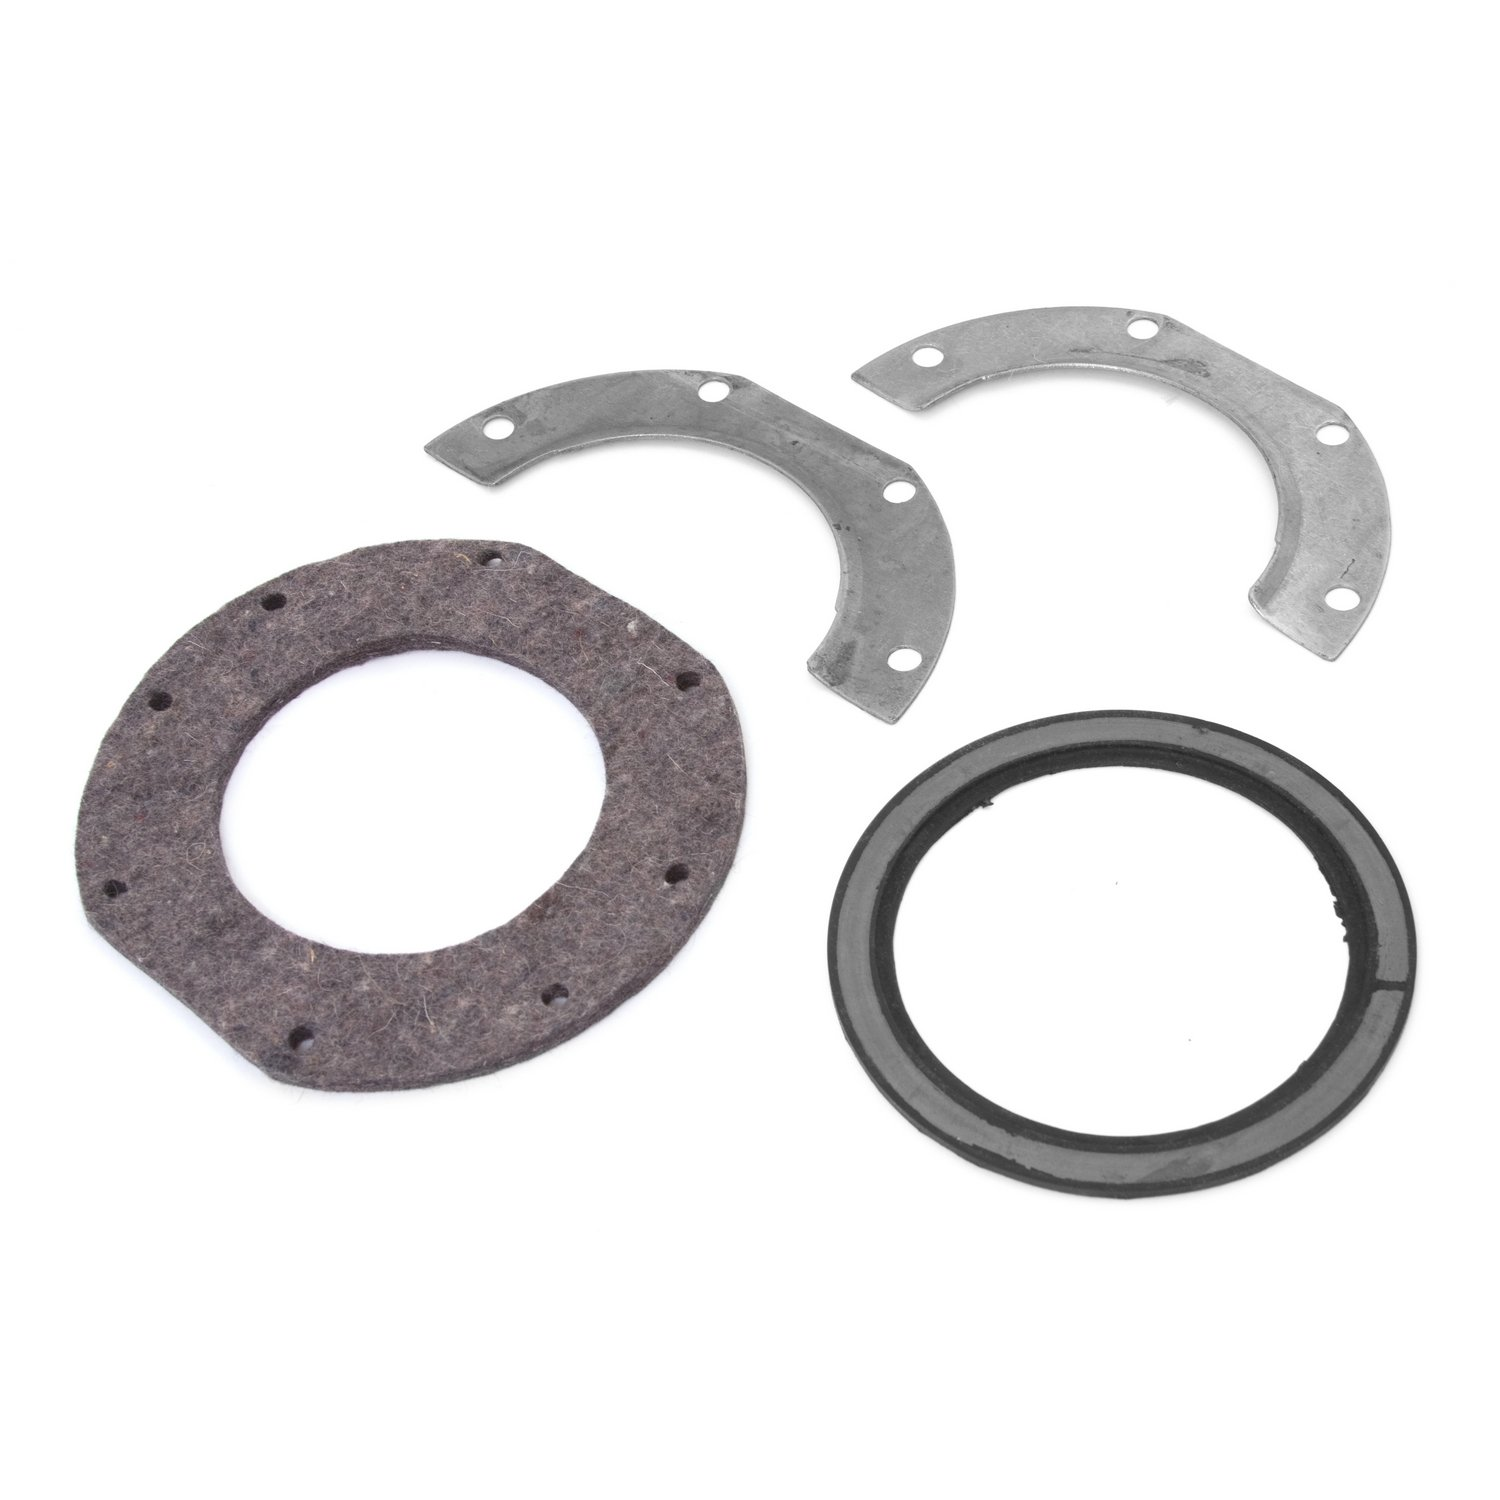 Omix-Ada 18026.03 Steering Knuckle Seal Kit